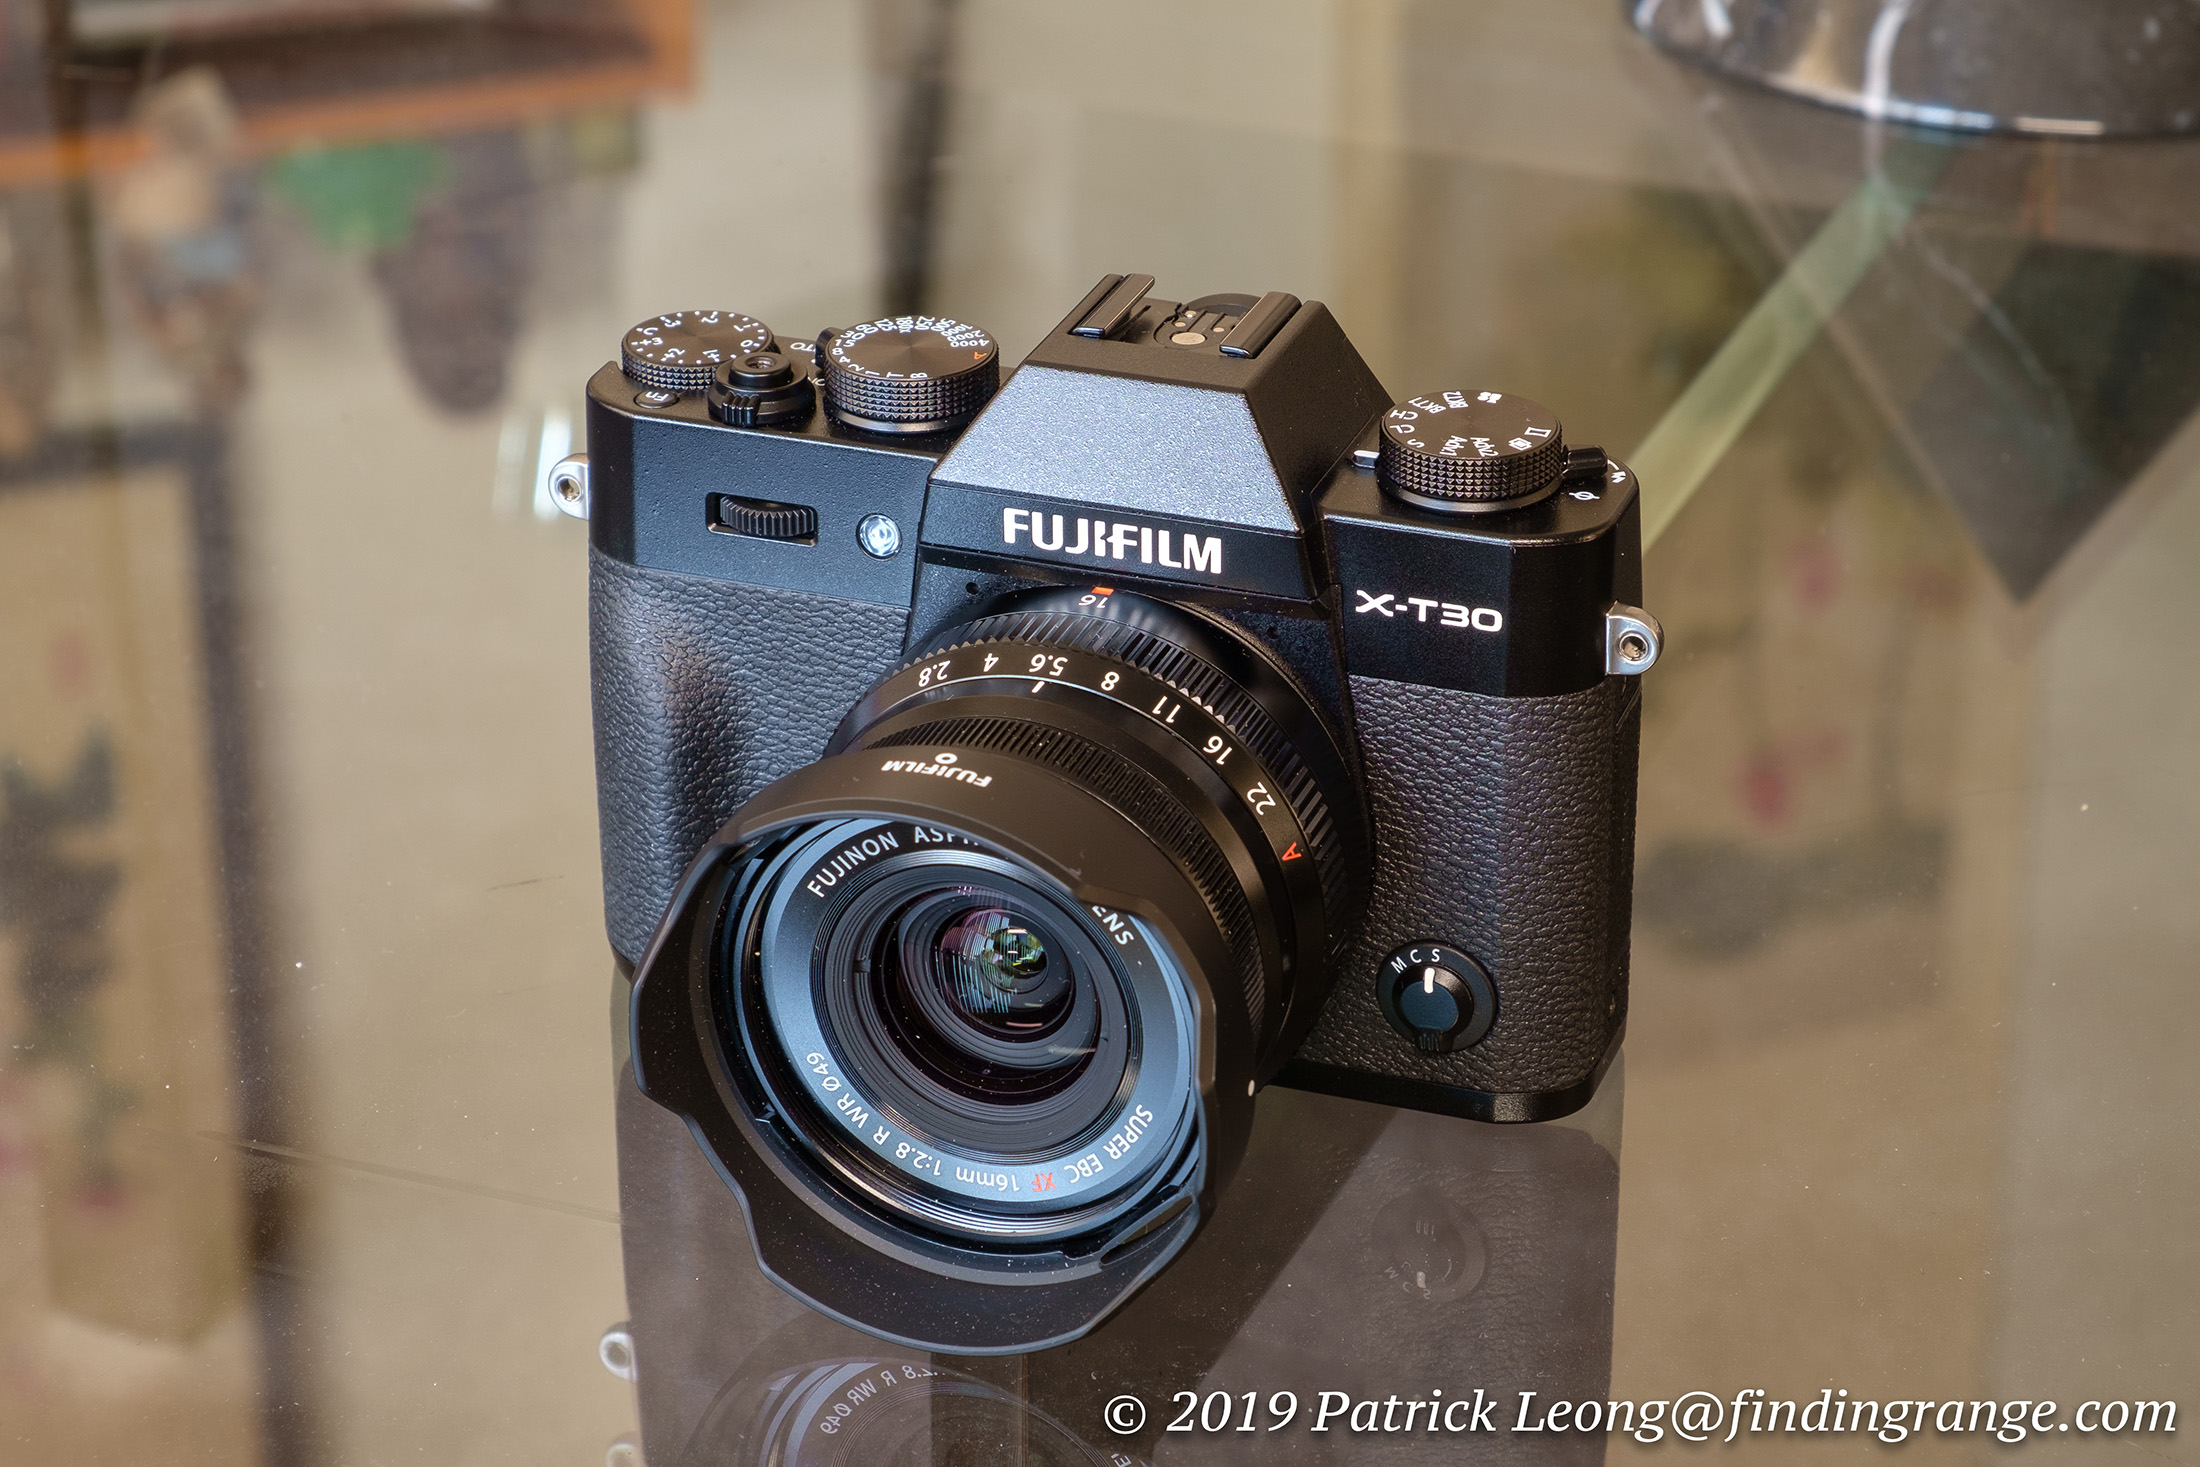 Fujifilm X-T30 Mirrorless Camera Review: Compact Powerhouse